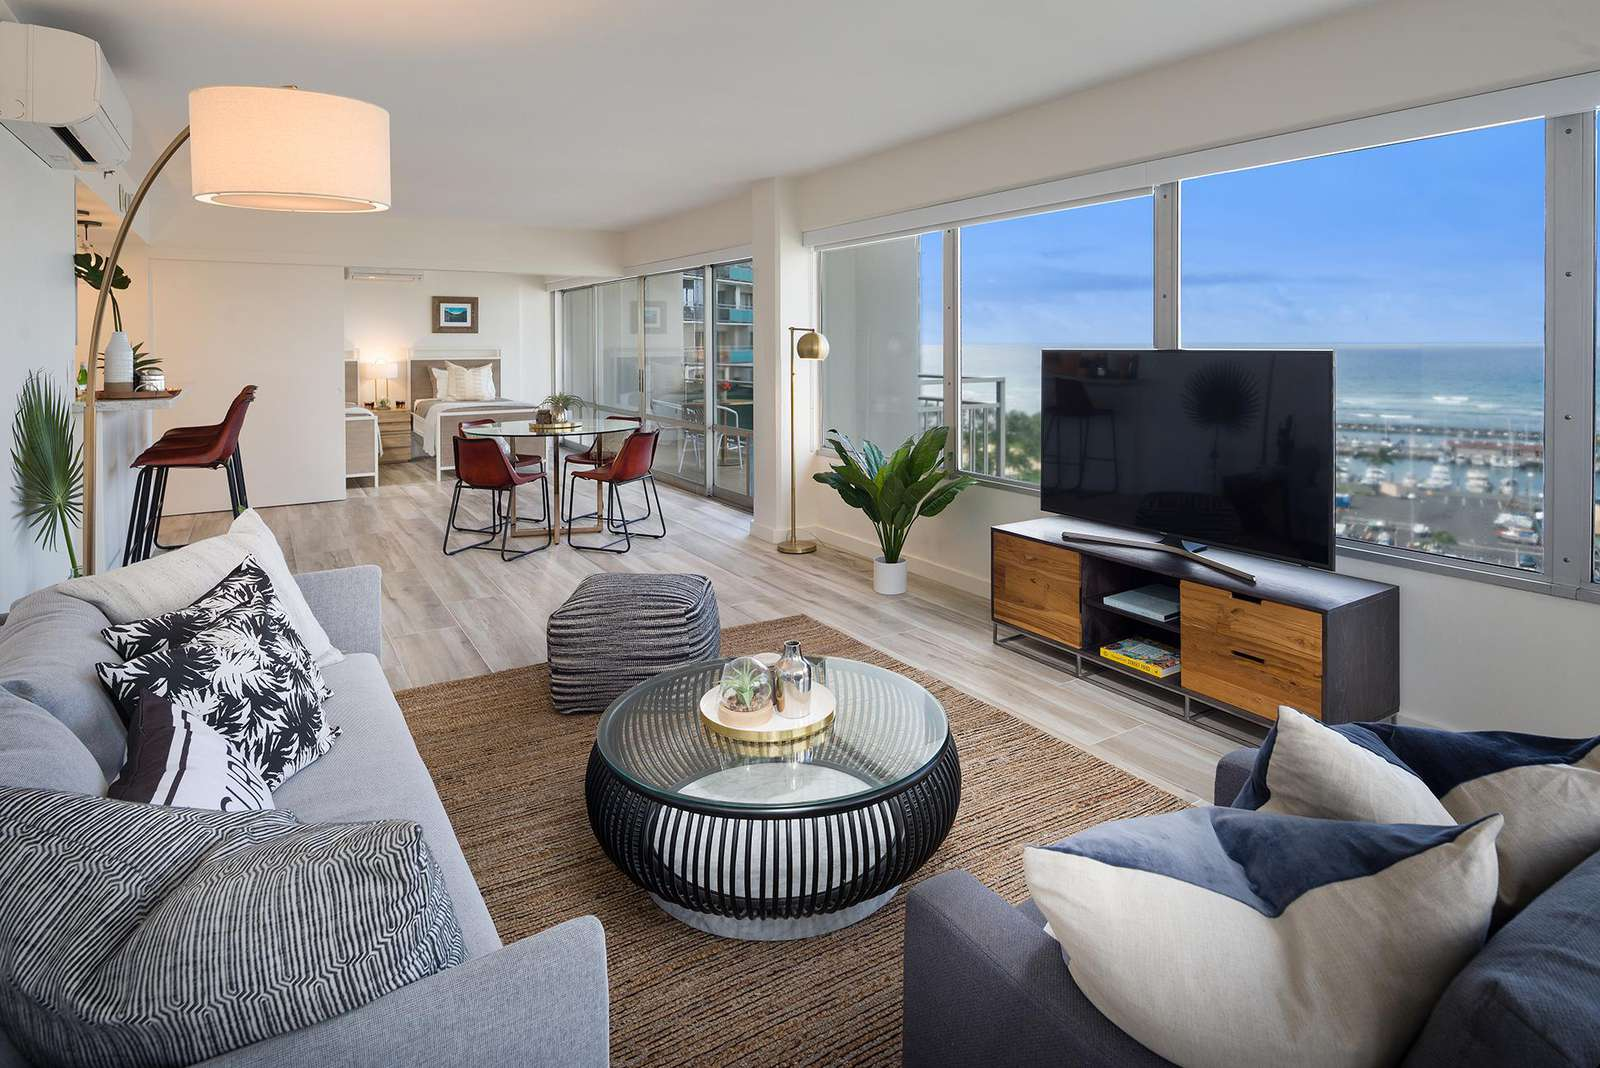 Large, spacious living / dining area - with yacht harbor and pacific ocean views behind TV!